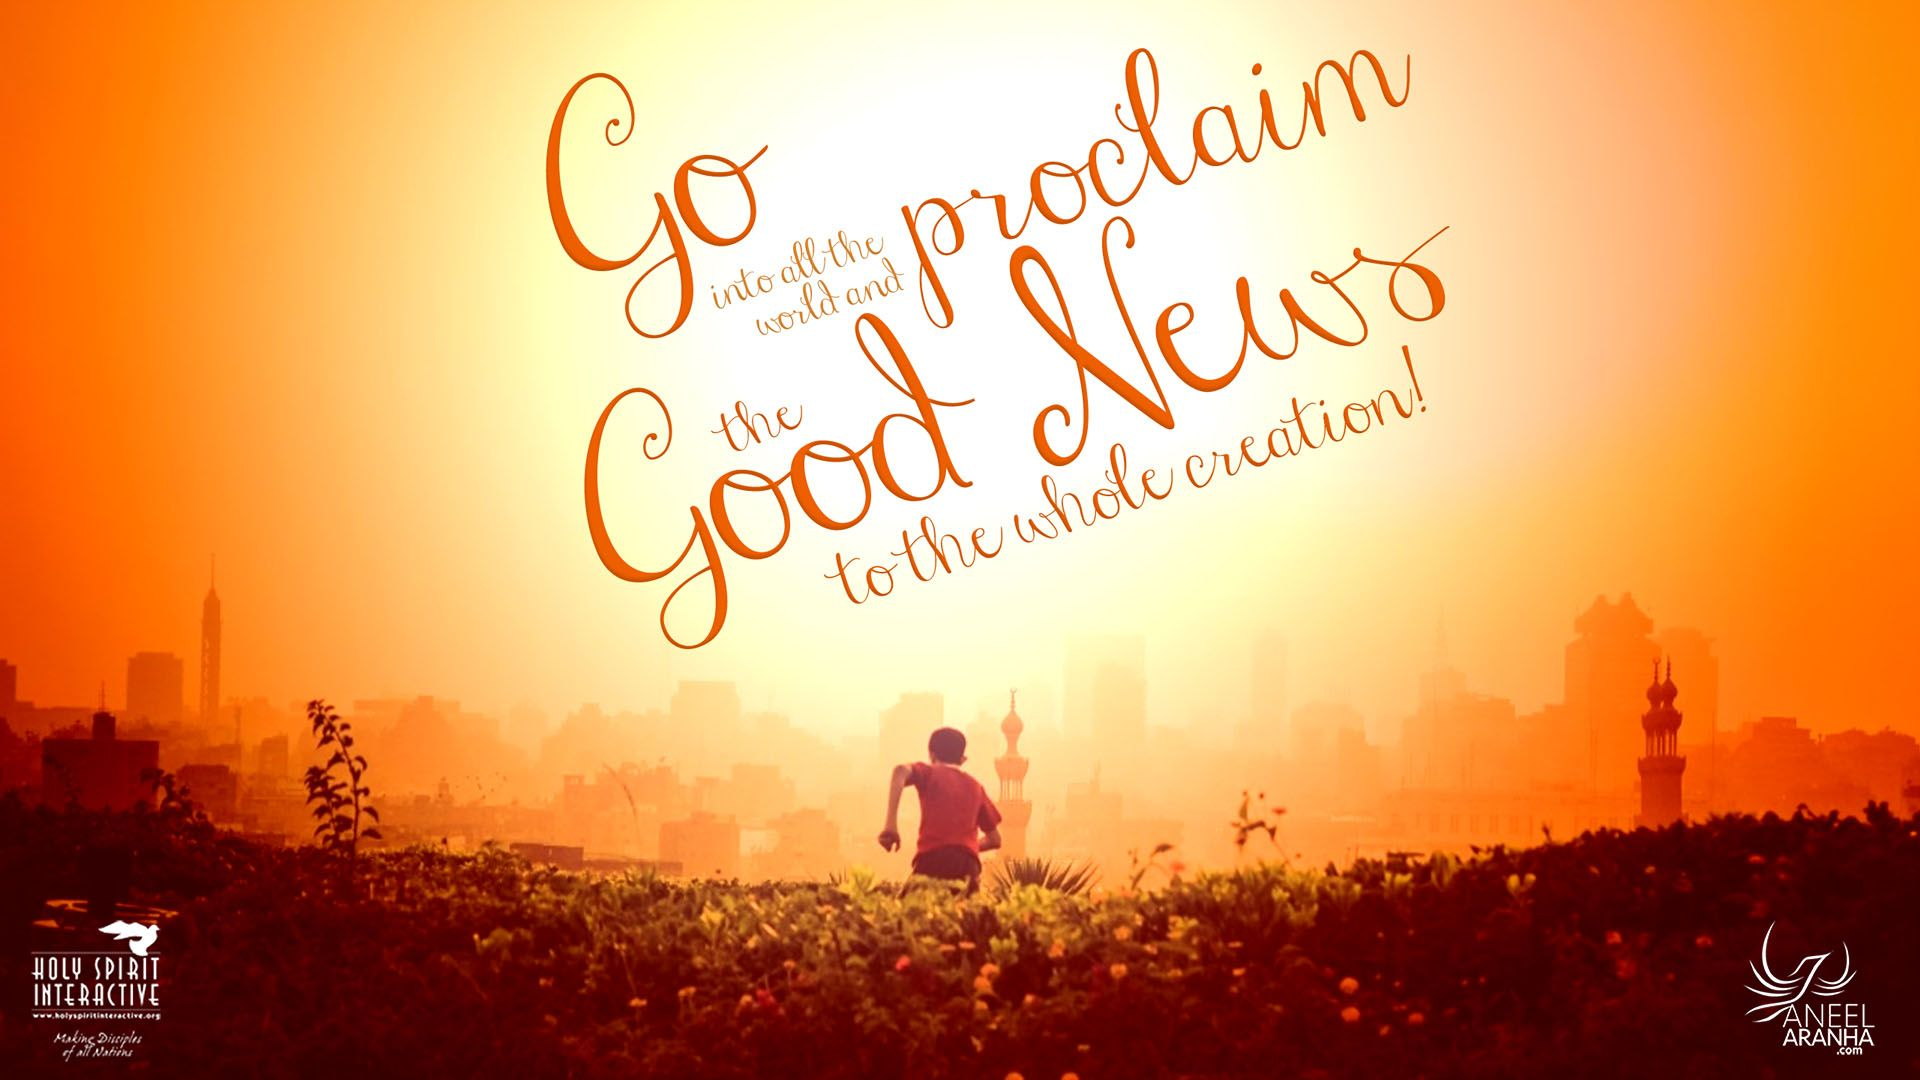 Go Into All The World And Proclaim The Good News To The